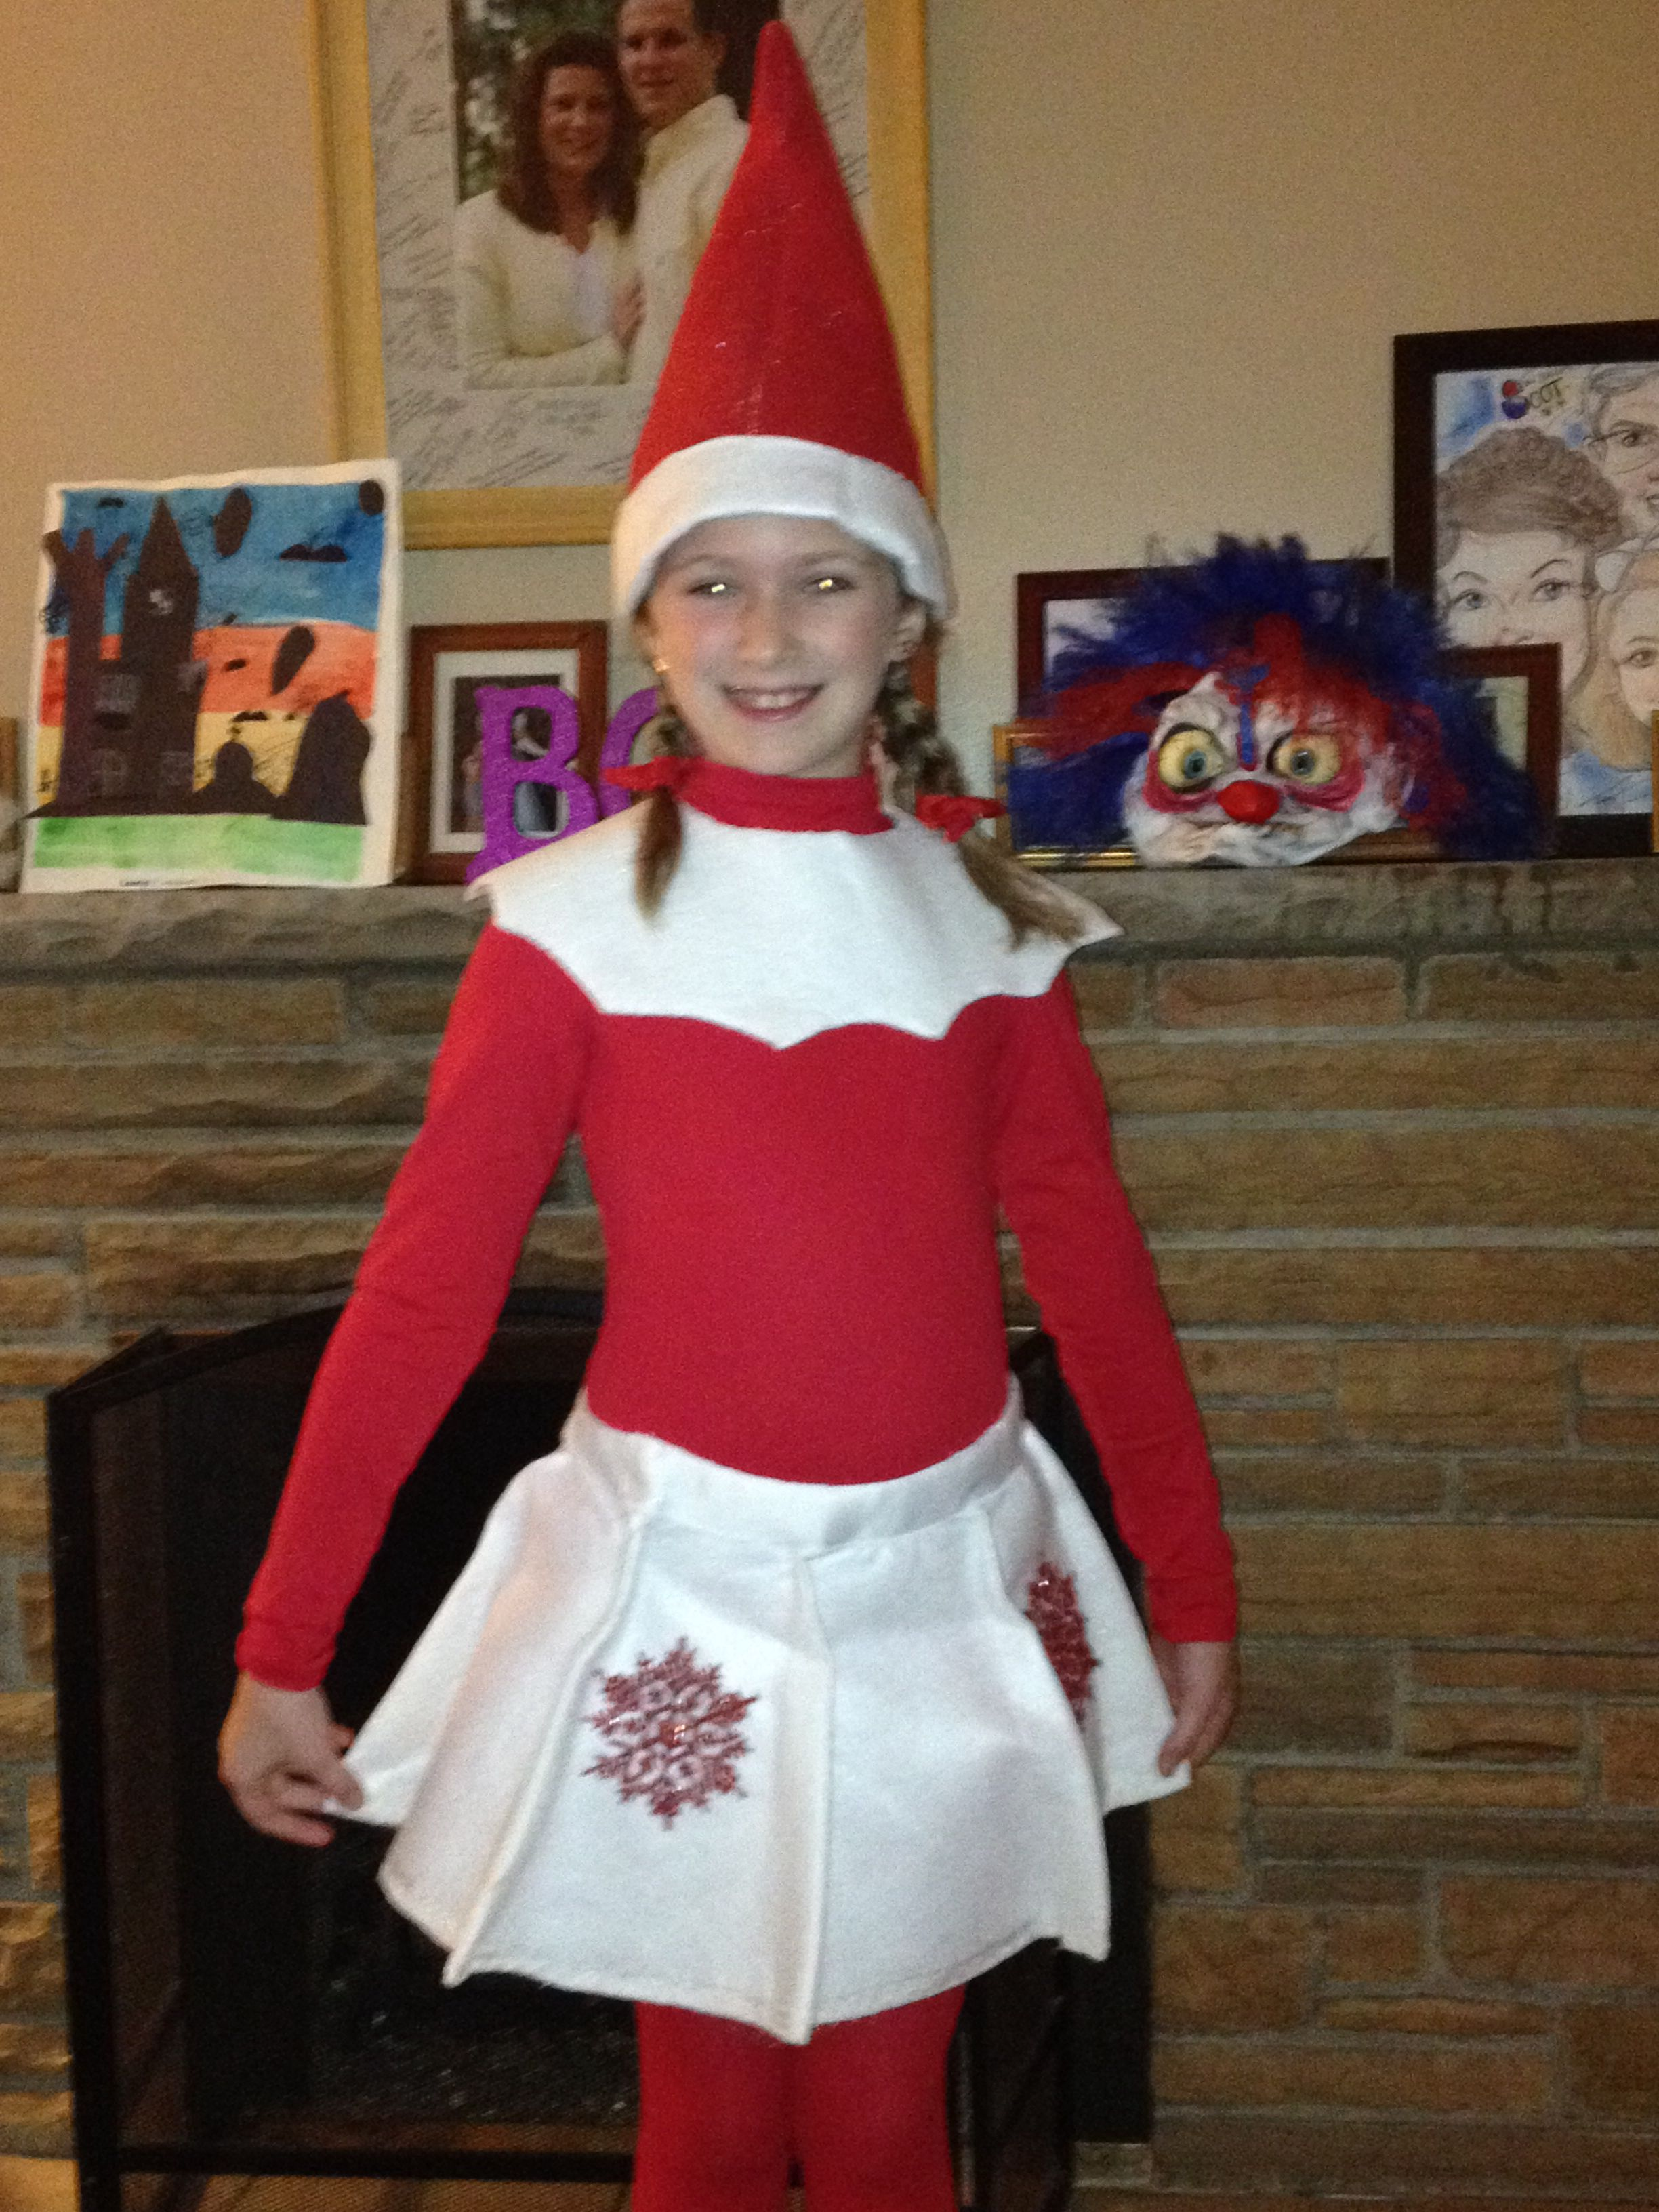 Elf on the Shelf costume made this costume for my